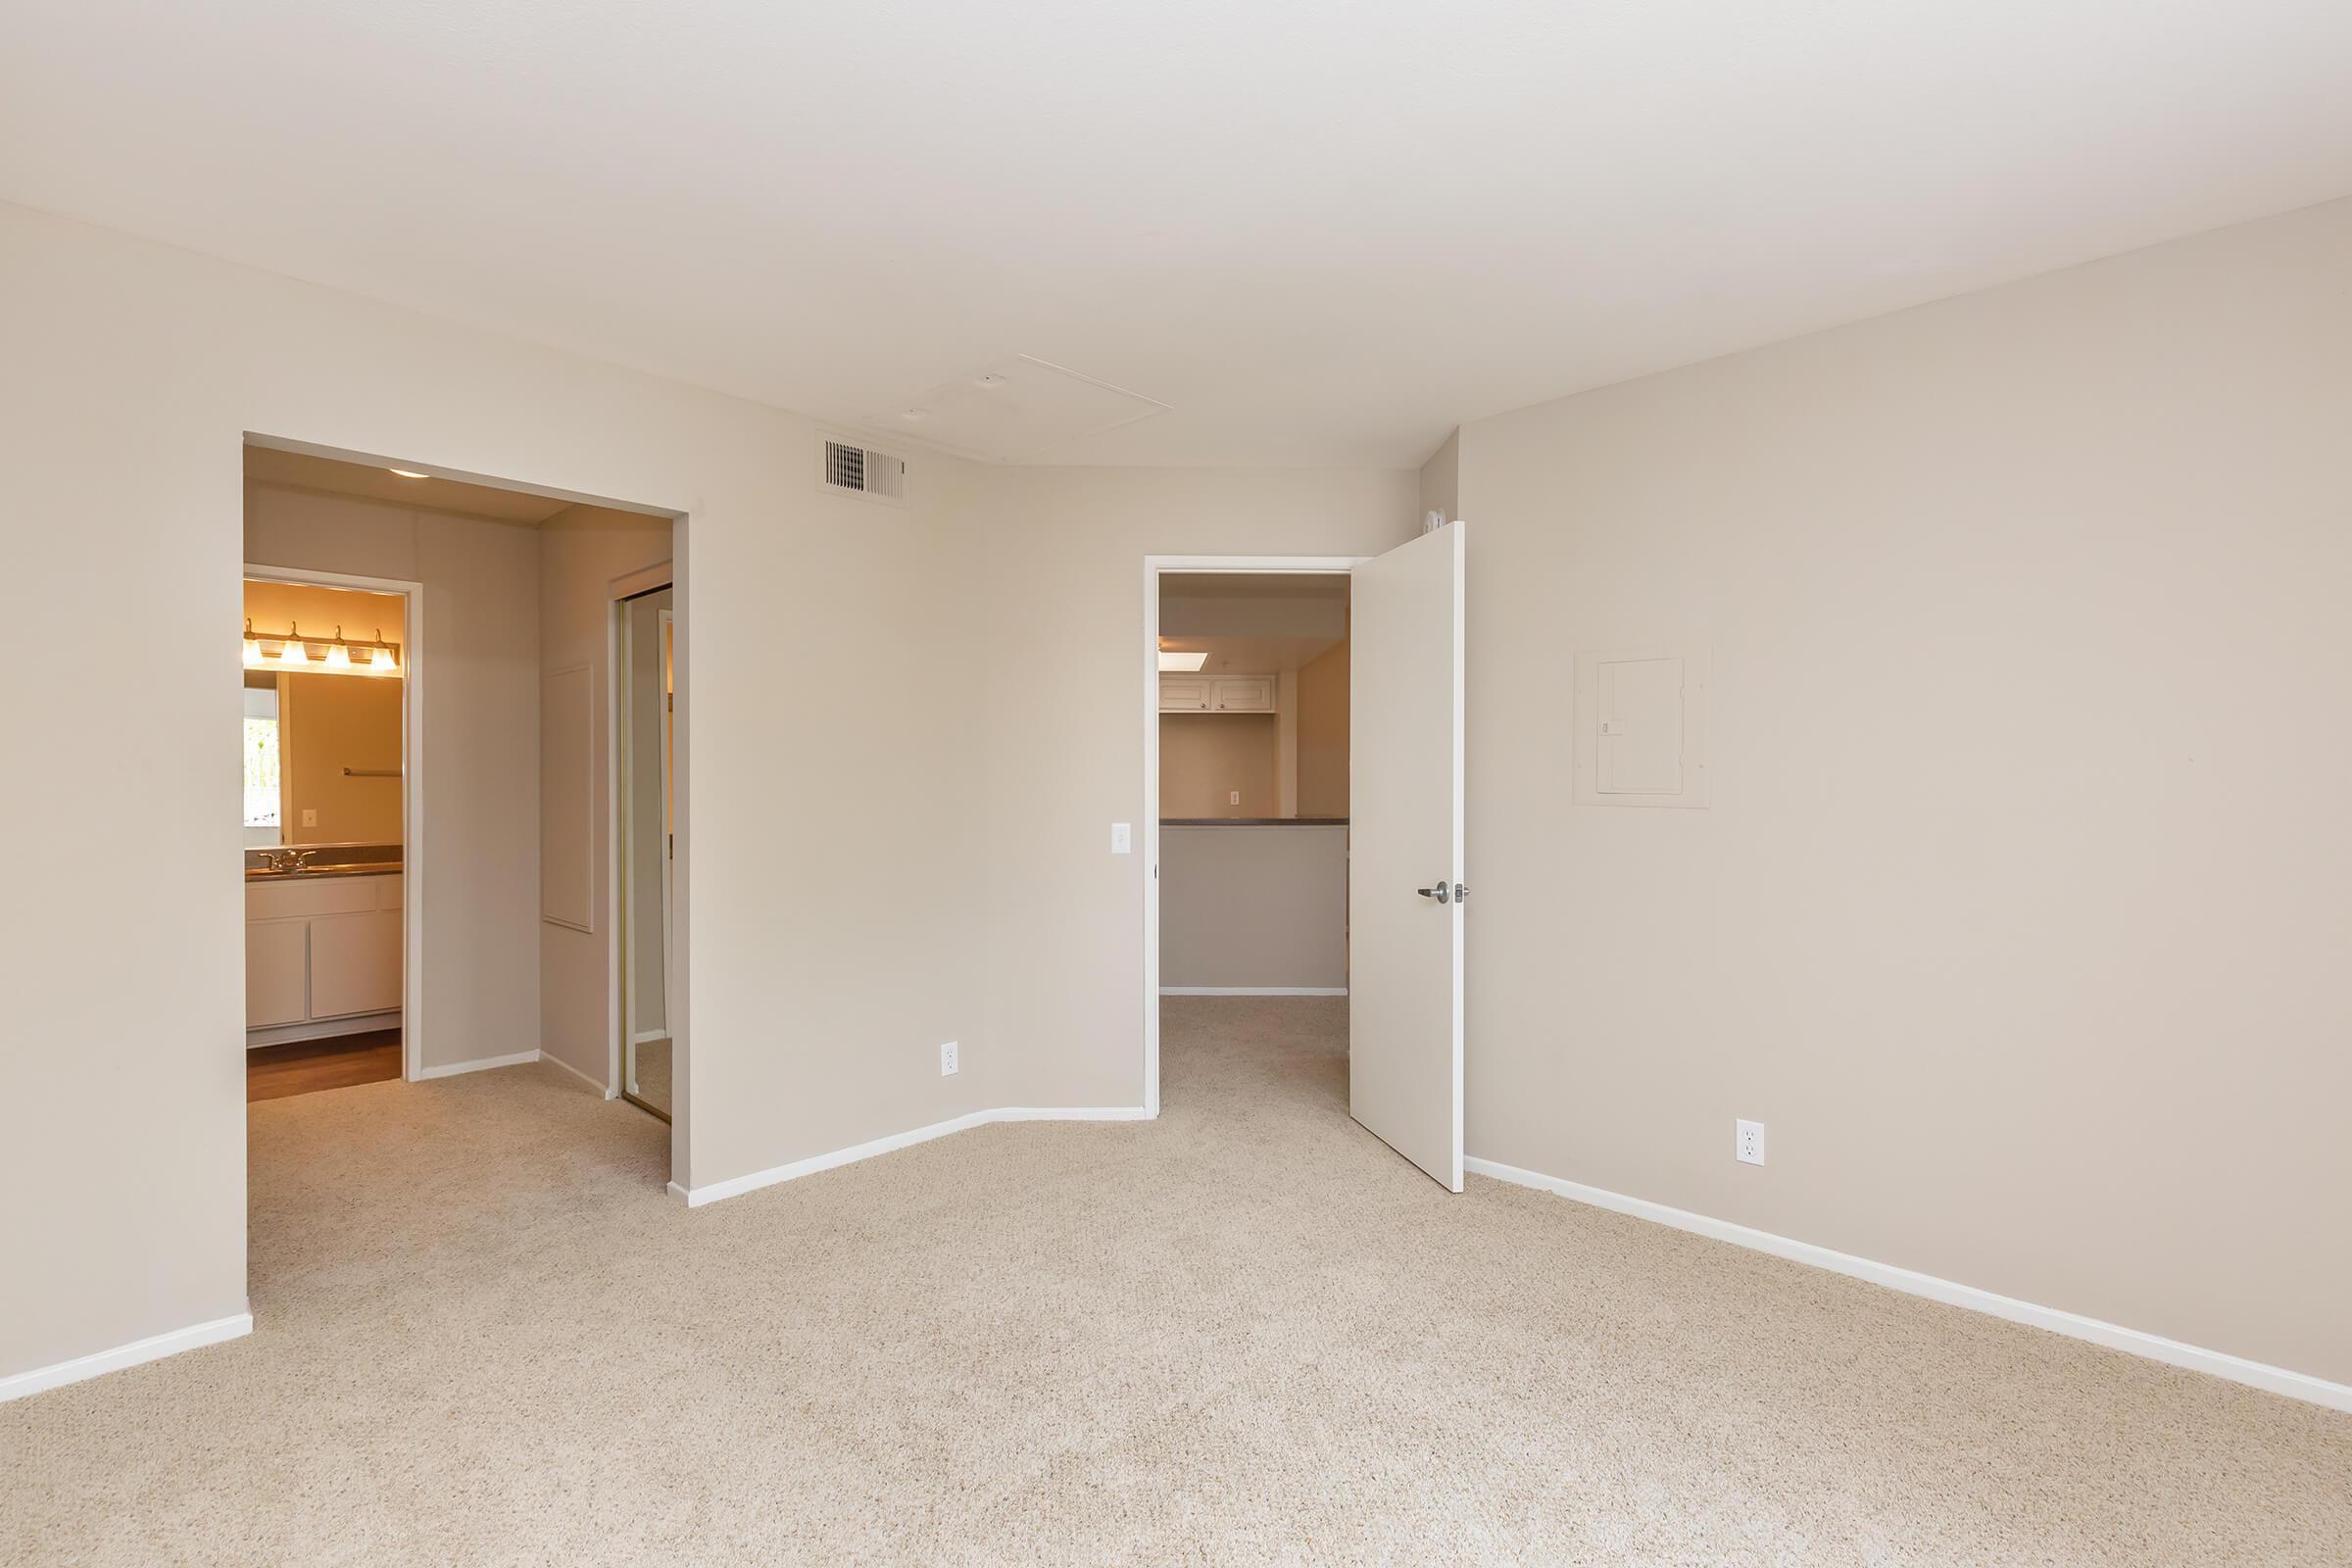 Unfurnished carpeted bedroom with open closet and bathroom doors